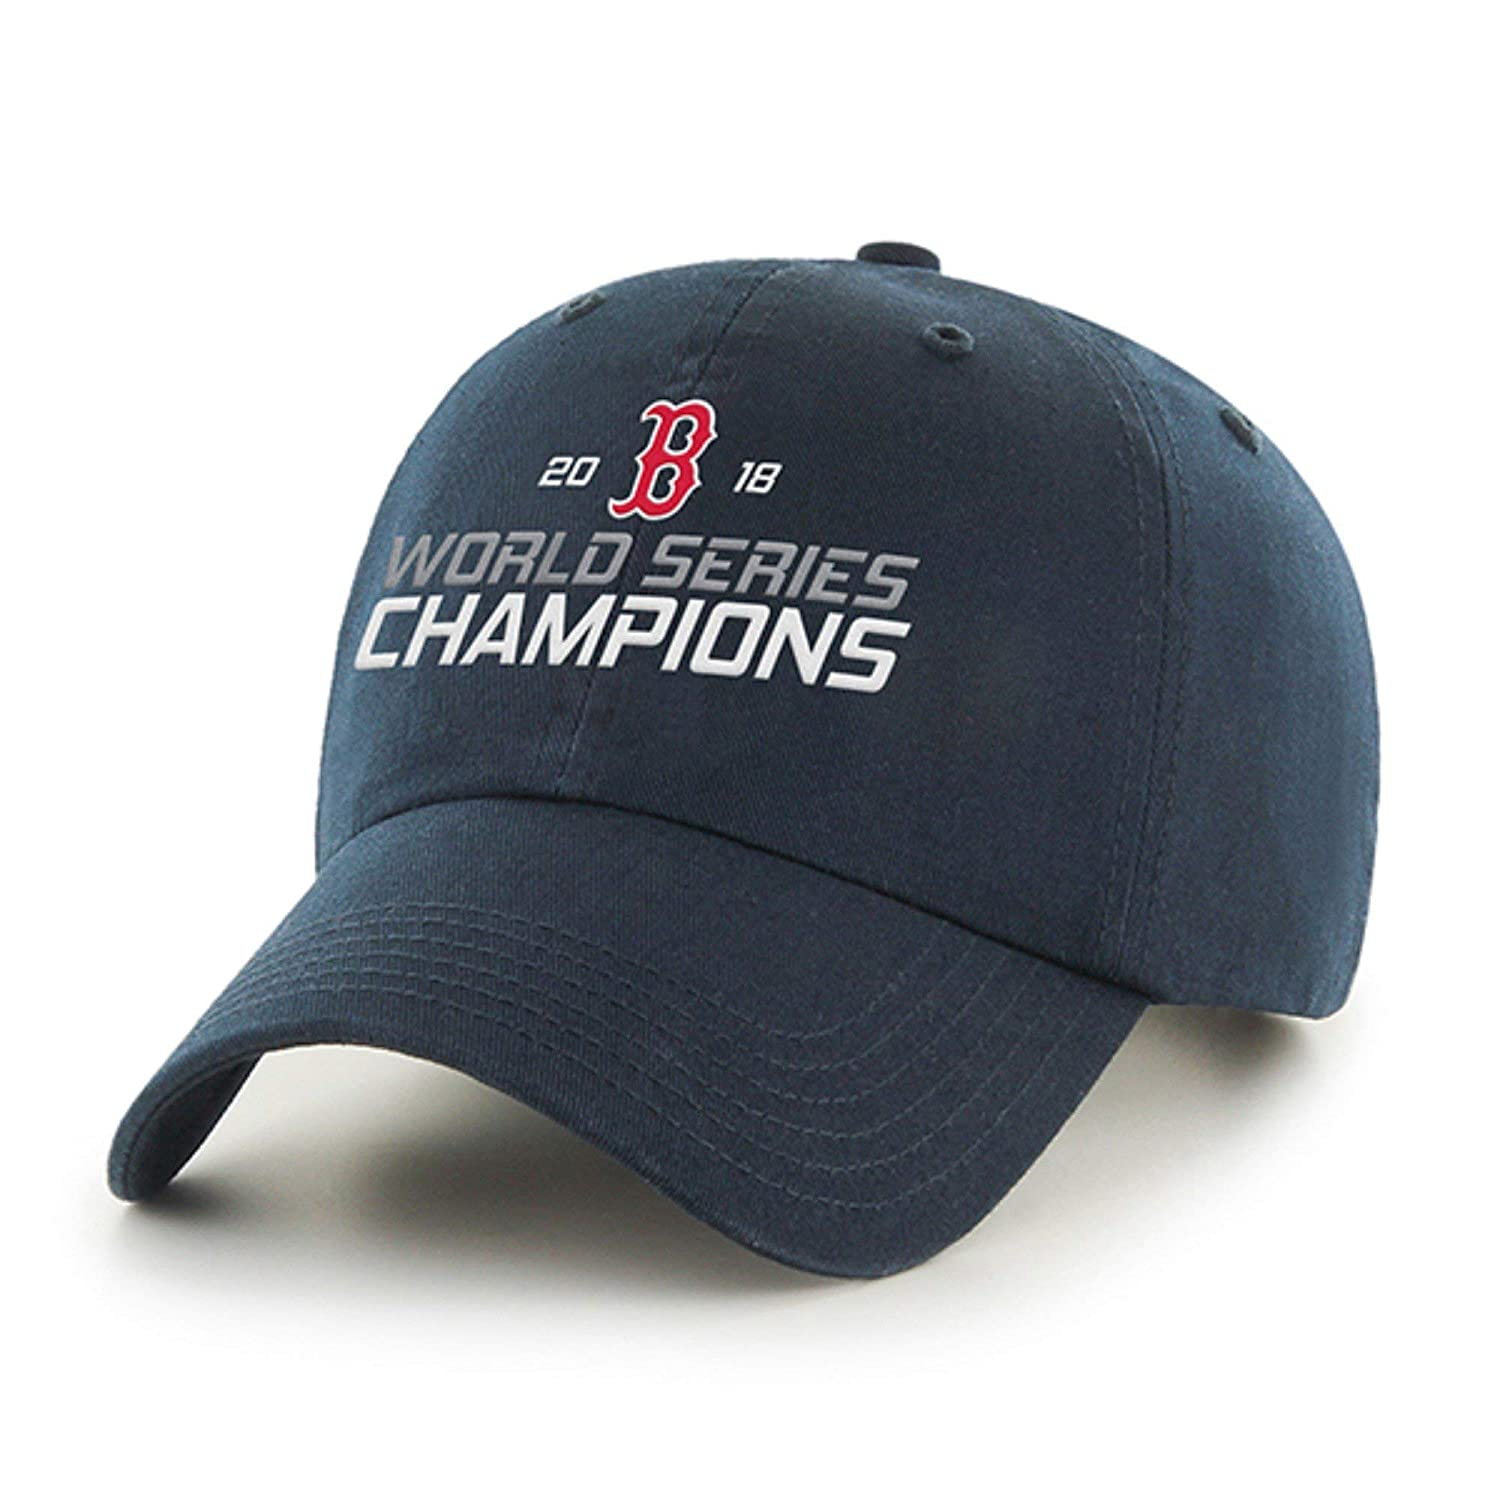 cheap for discount d17ba 85c47 Fan Favorite MLB Boston Red Sox World Series Champions Clean Up Hat -  Adjustable